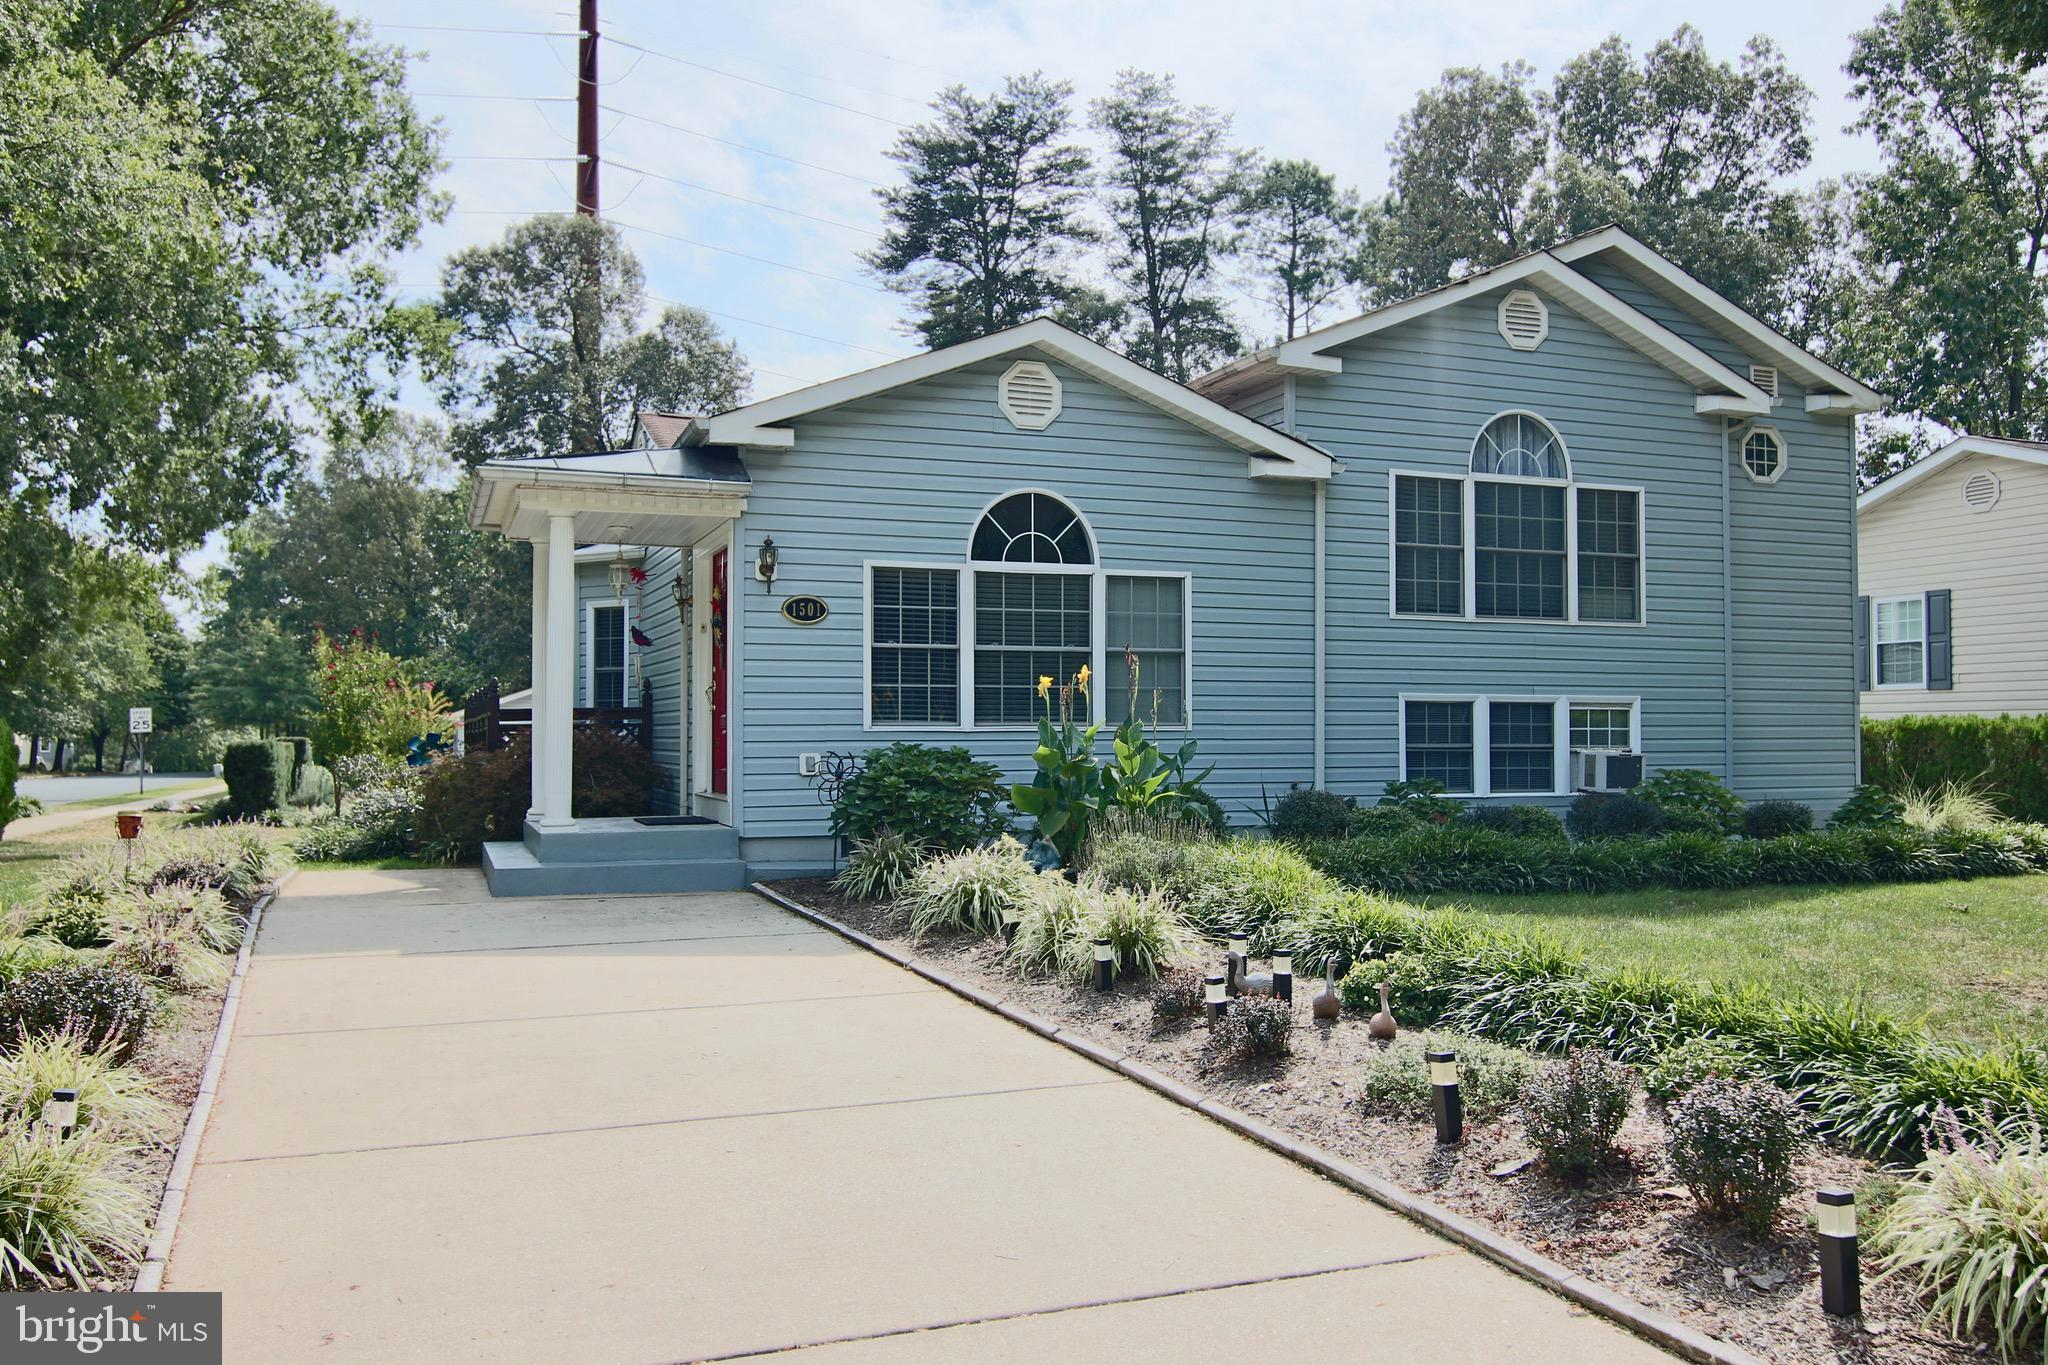 Welcome to this unique craftsman updated split level home with an open floor plan and oversized 3 ca